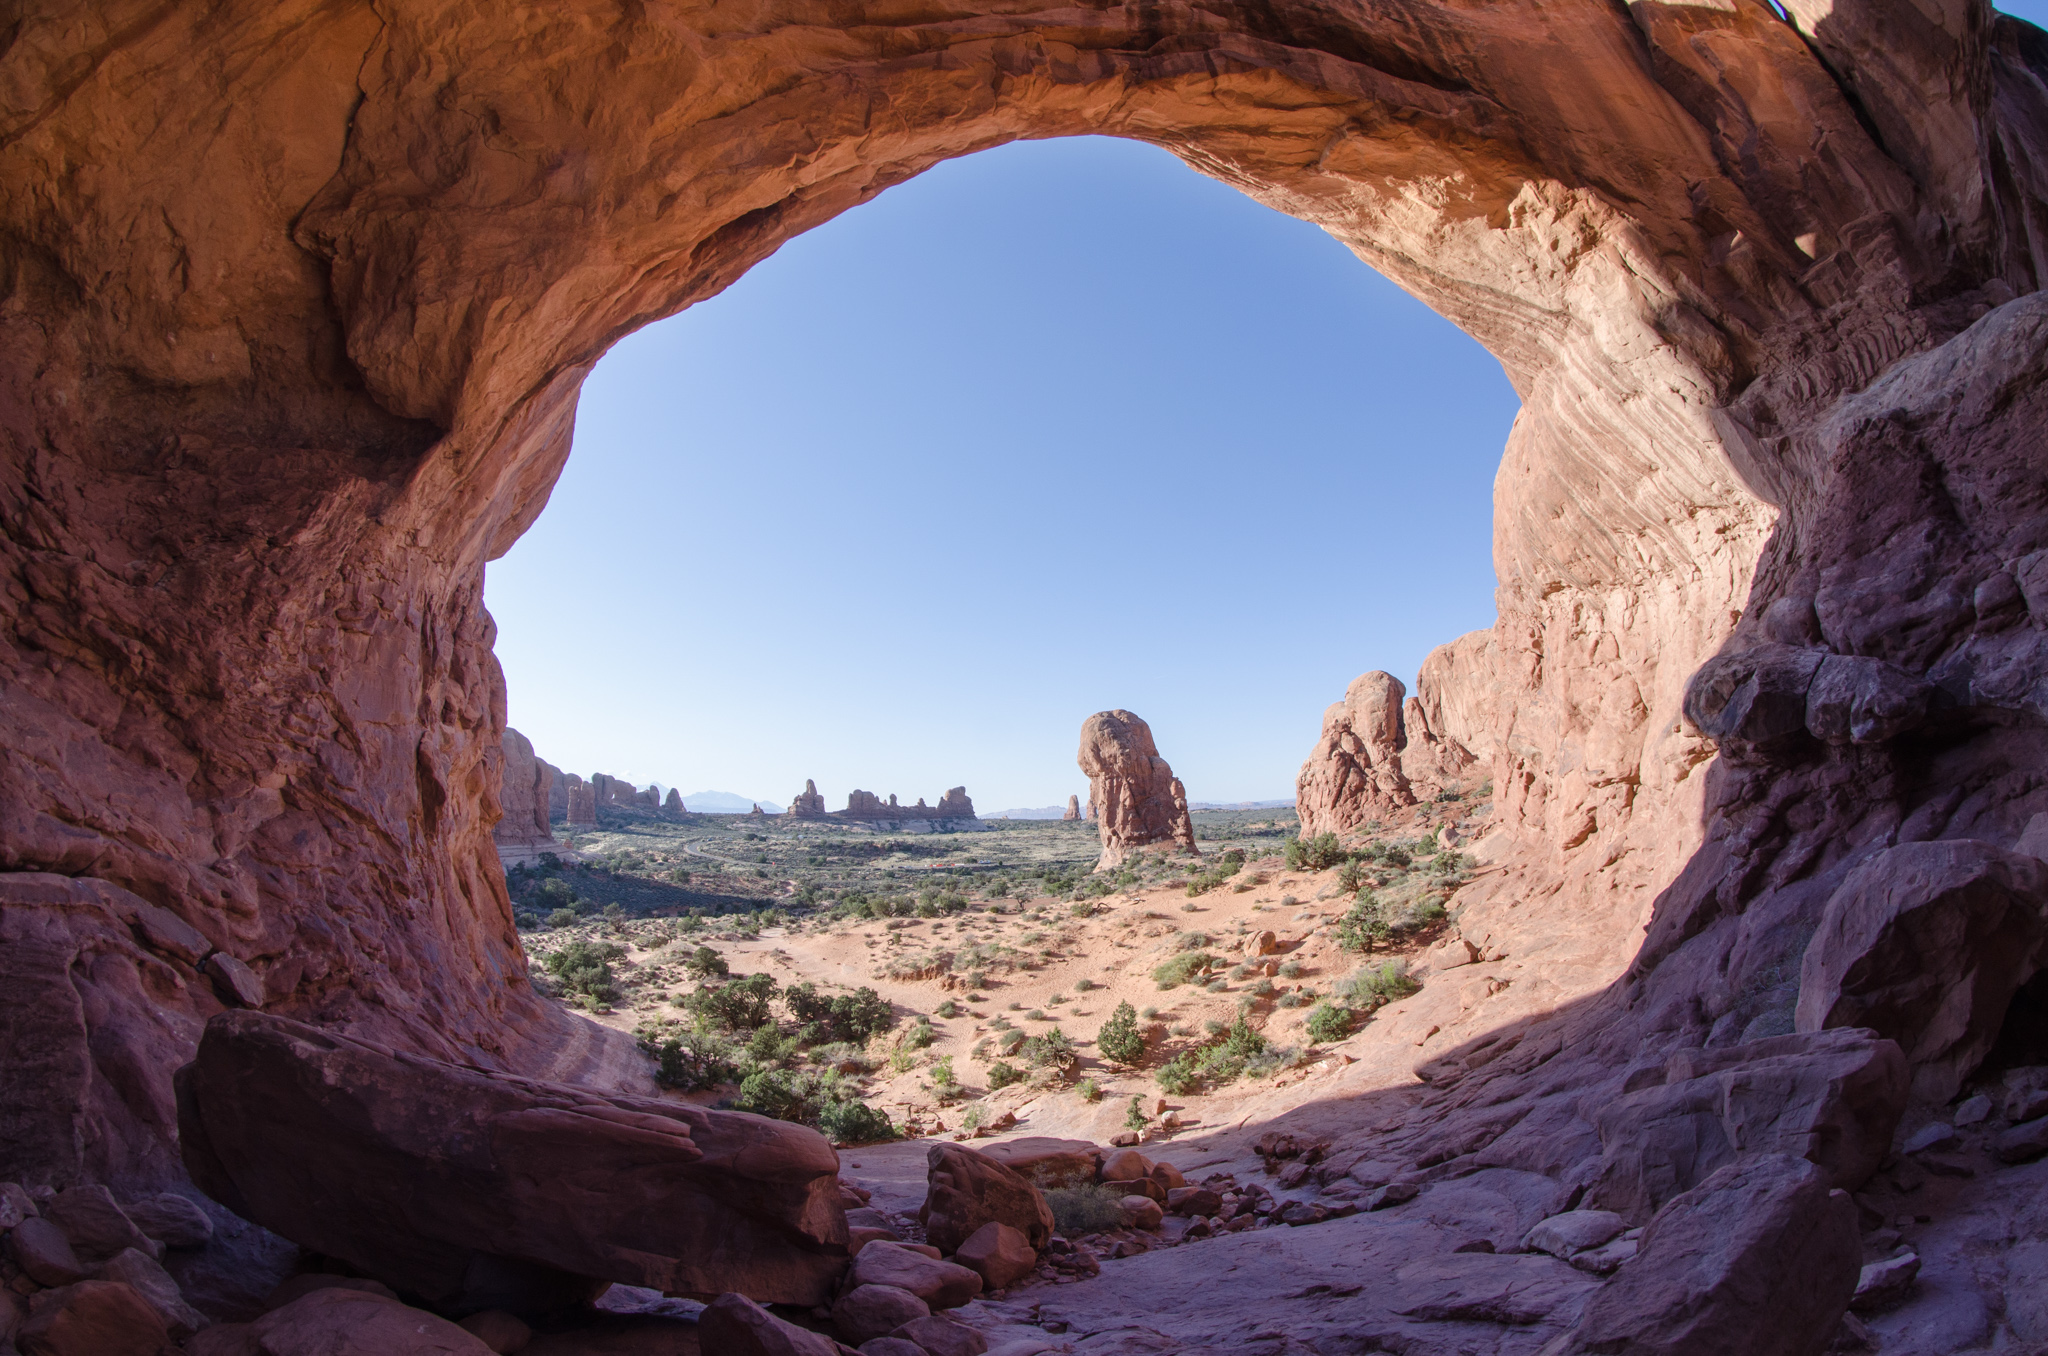 2015-04-01 - Arches National Park - 070